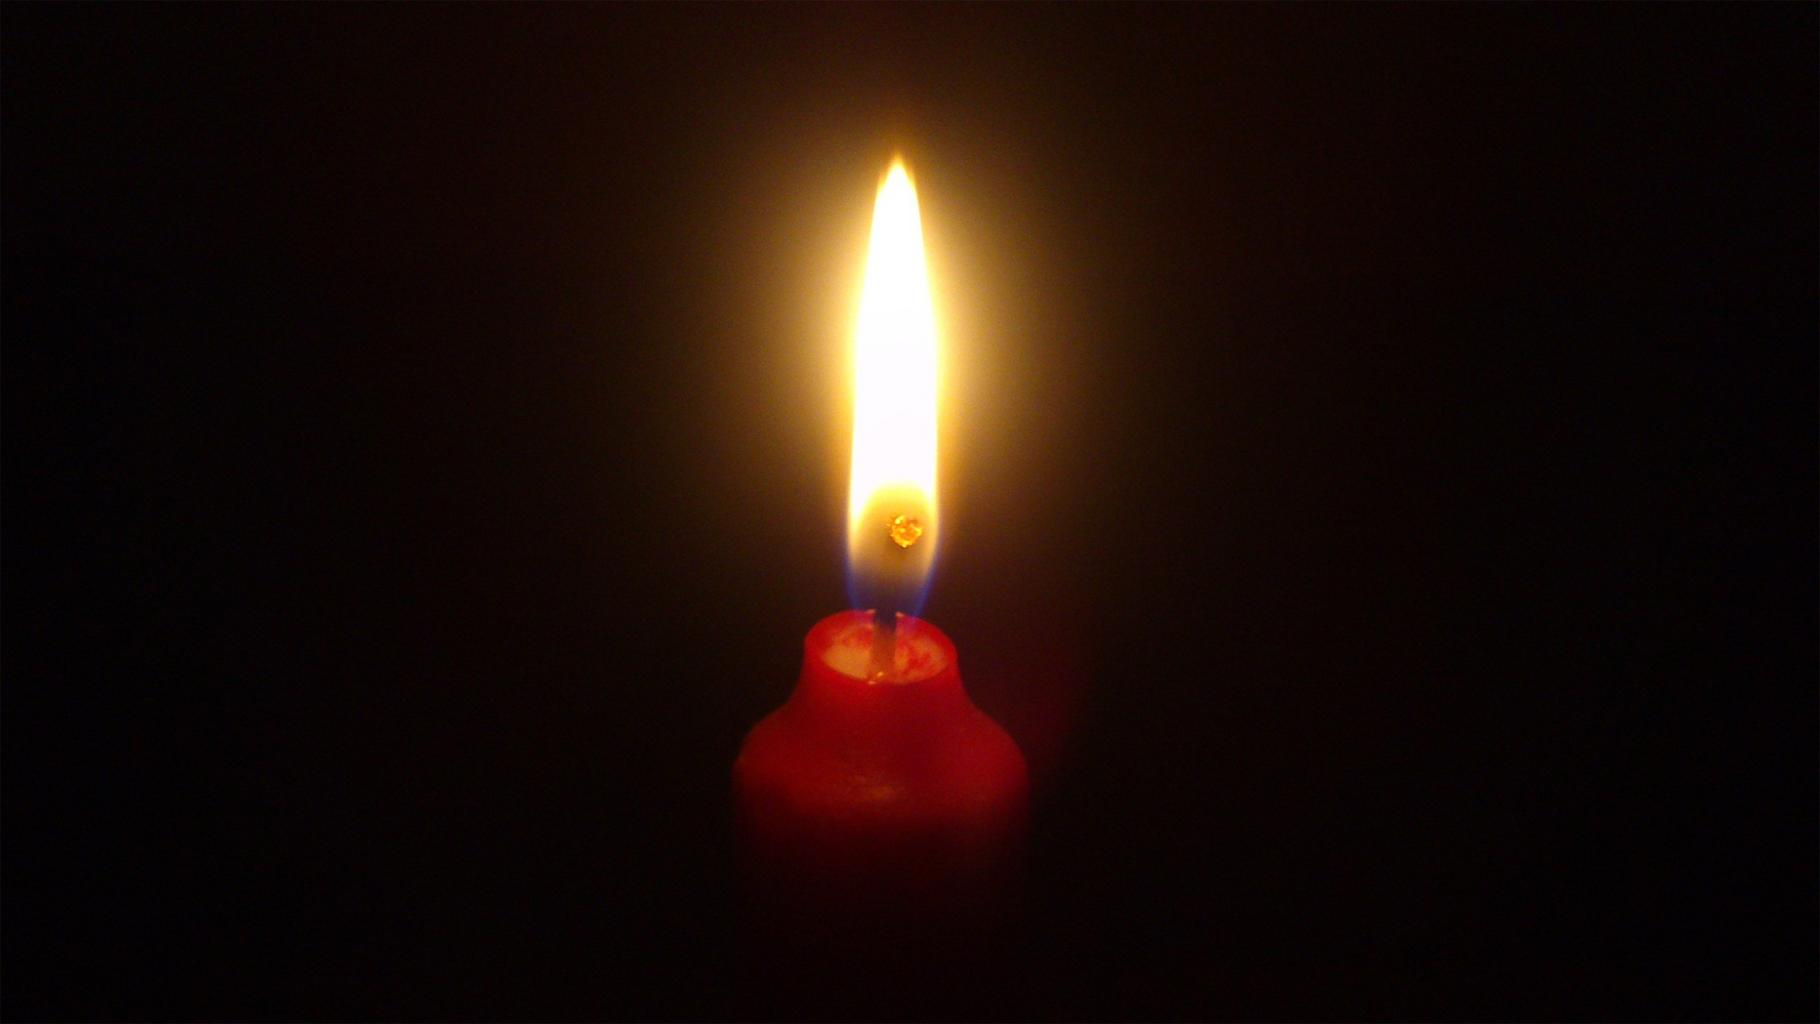 Free Images Light Candle Beautiful Bright